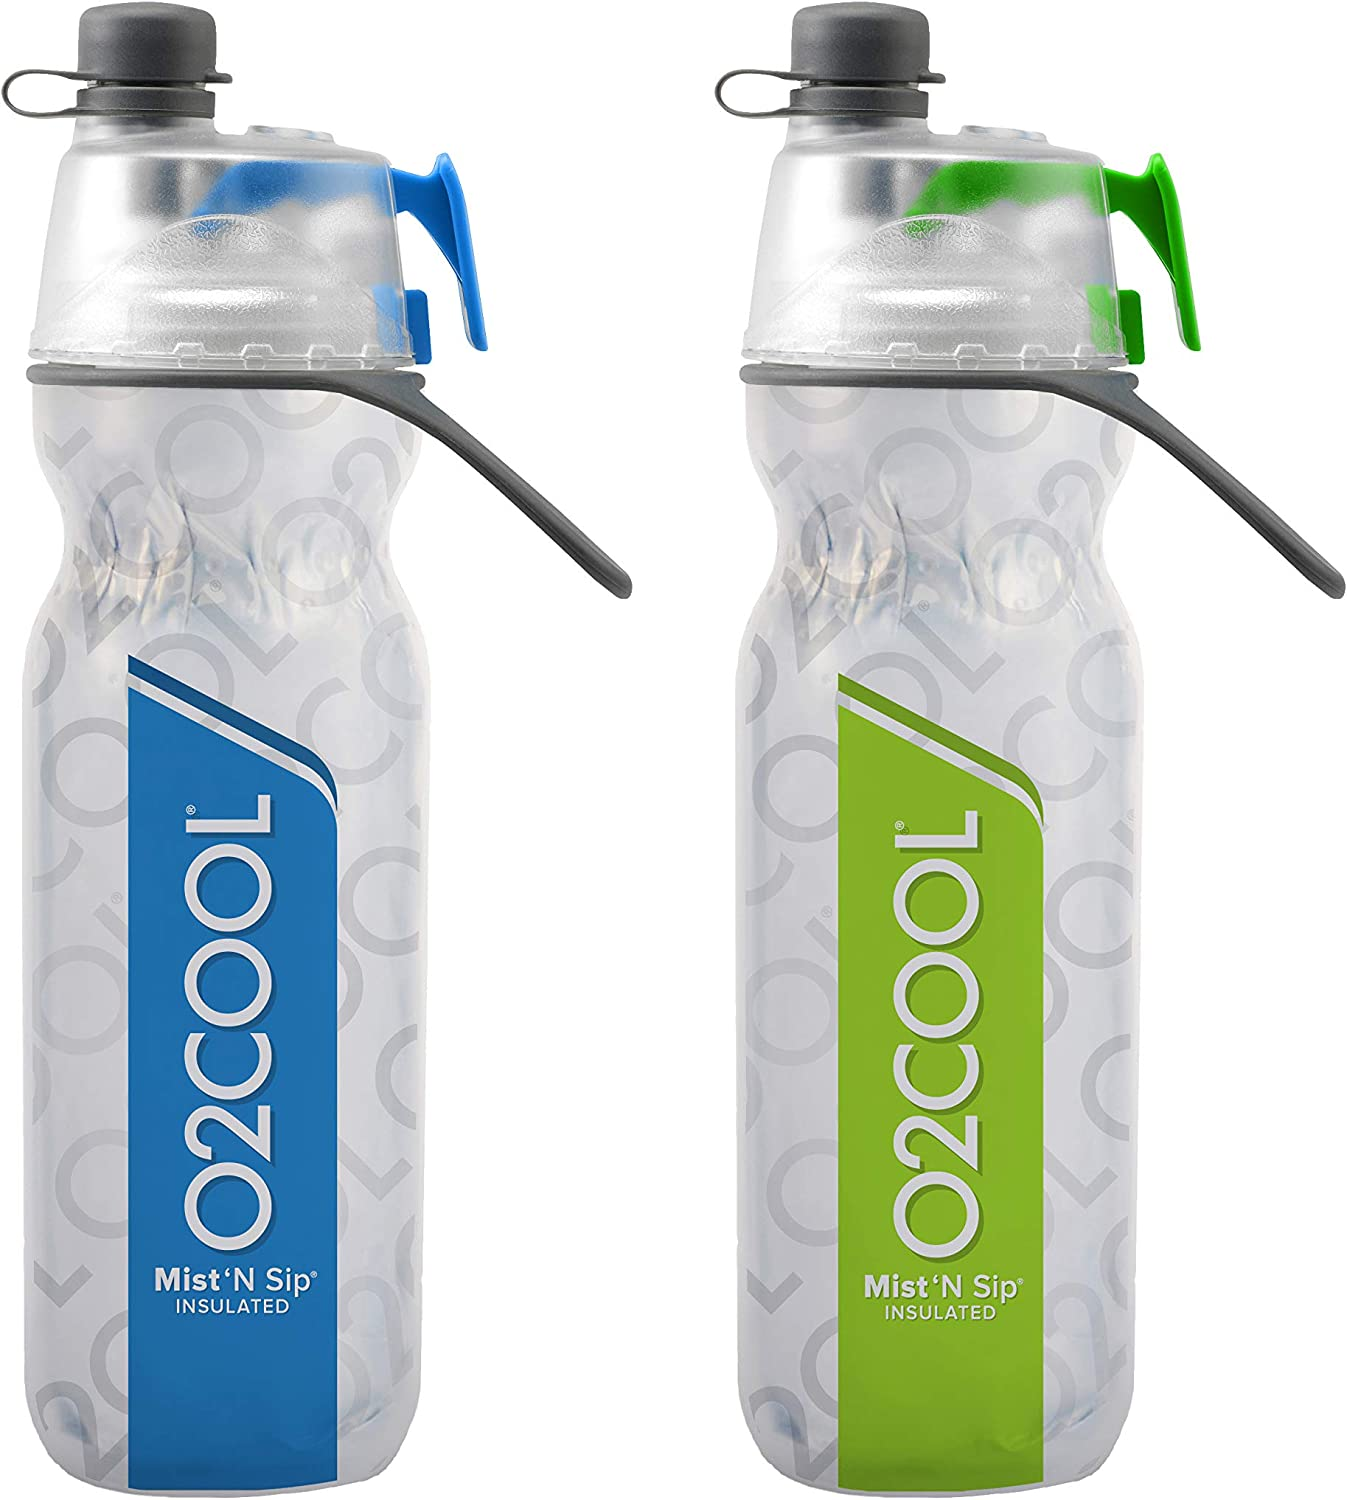 O2COOL Elite ArcticSqueeze Insulated Mist N Sip Squeeze Bottle 20 oz, Blue Green, 2 Packs